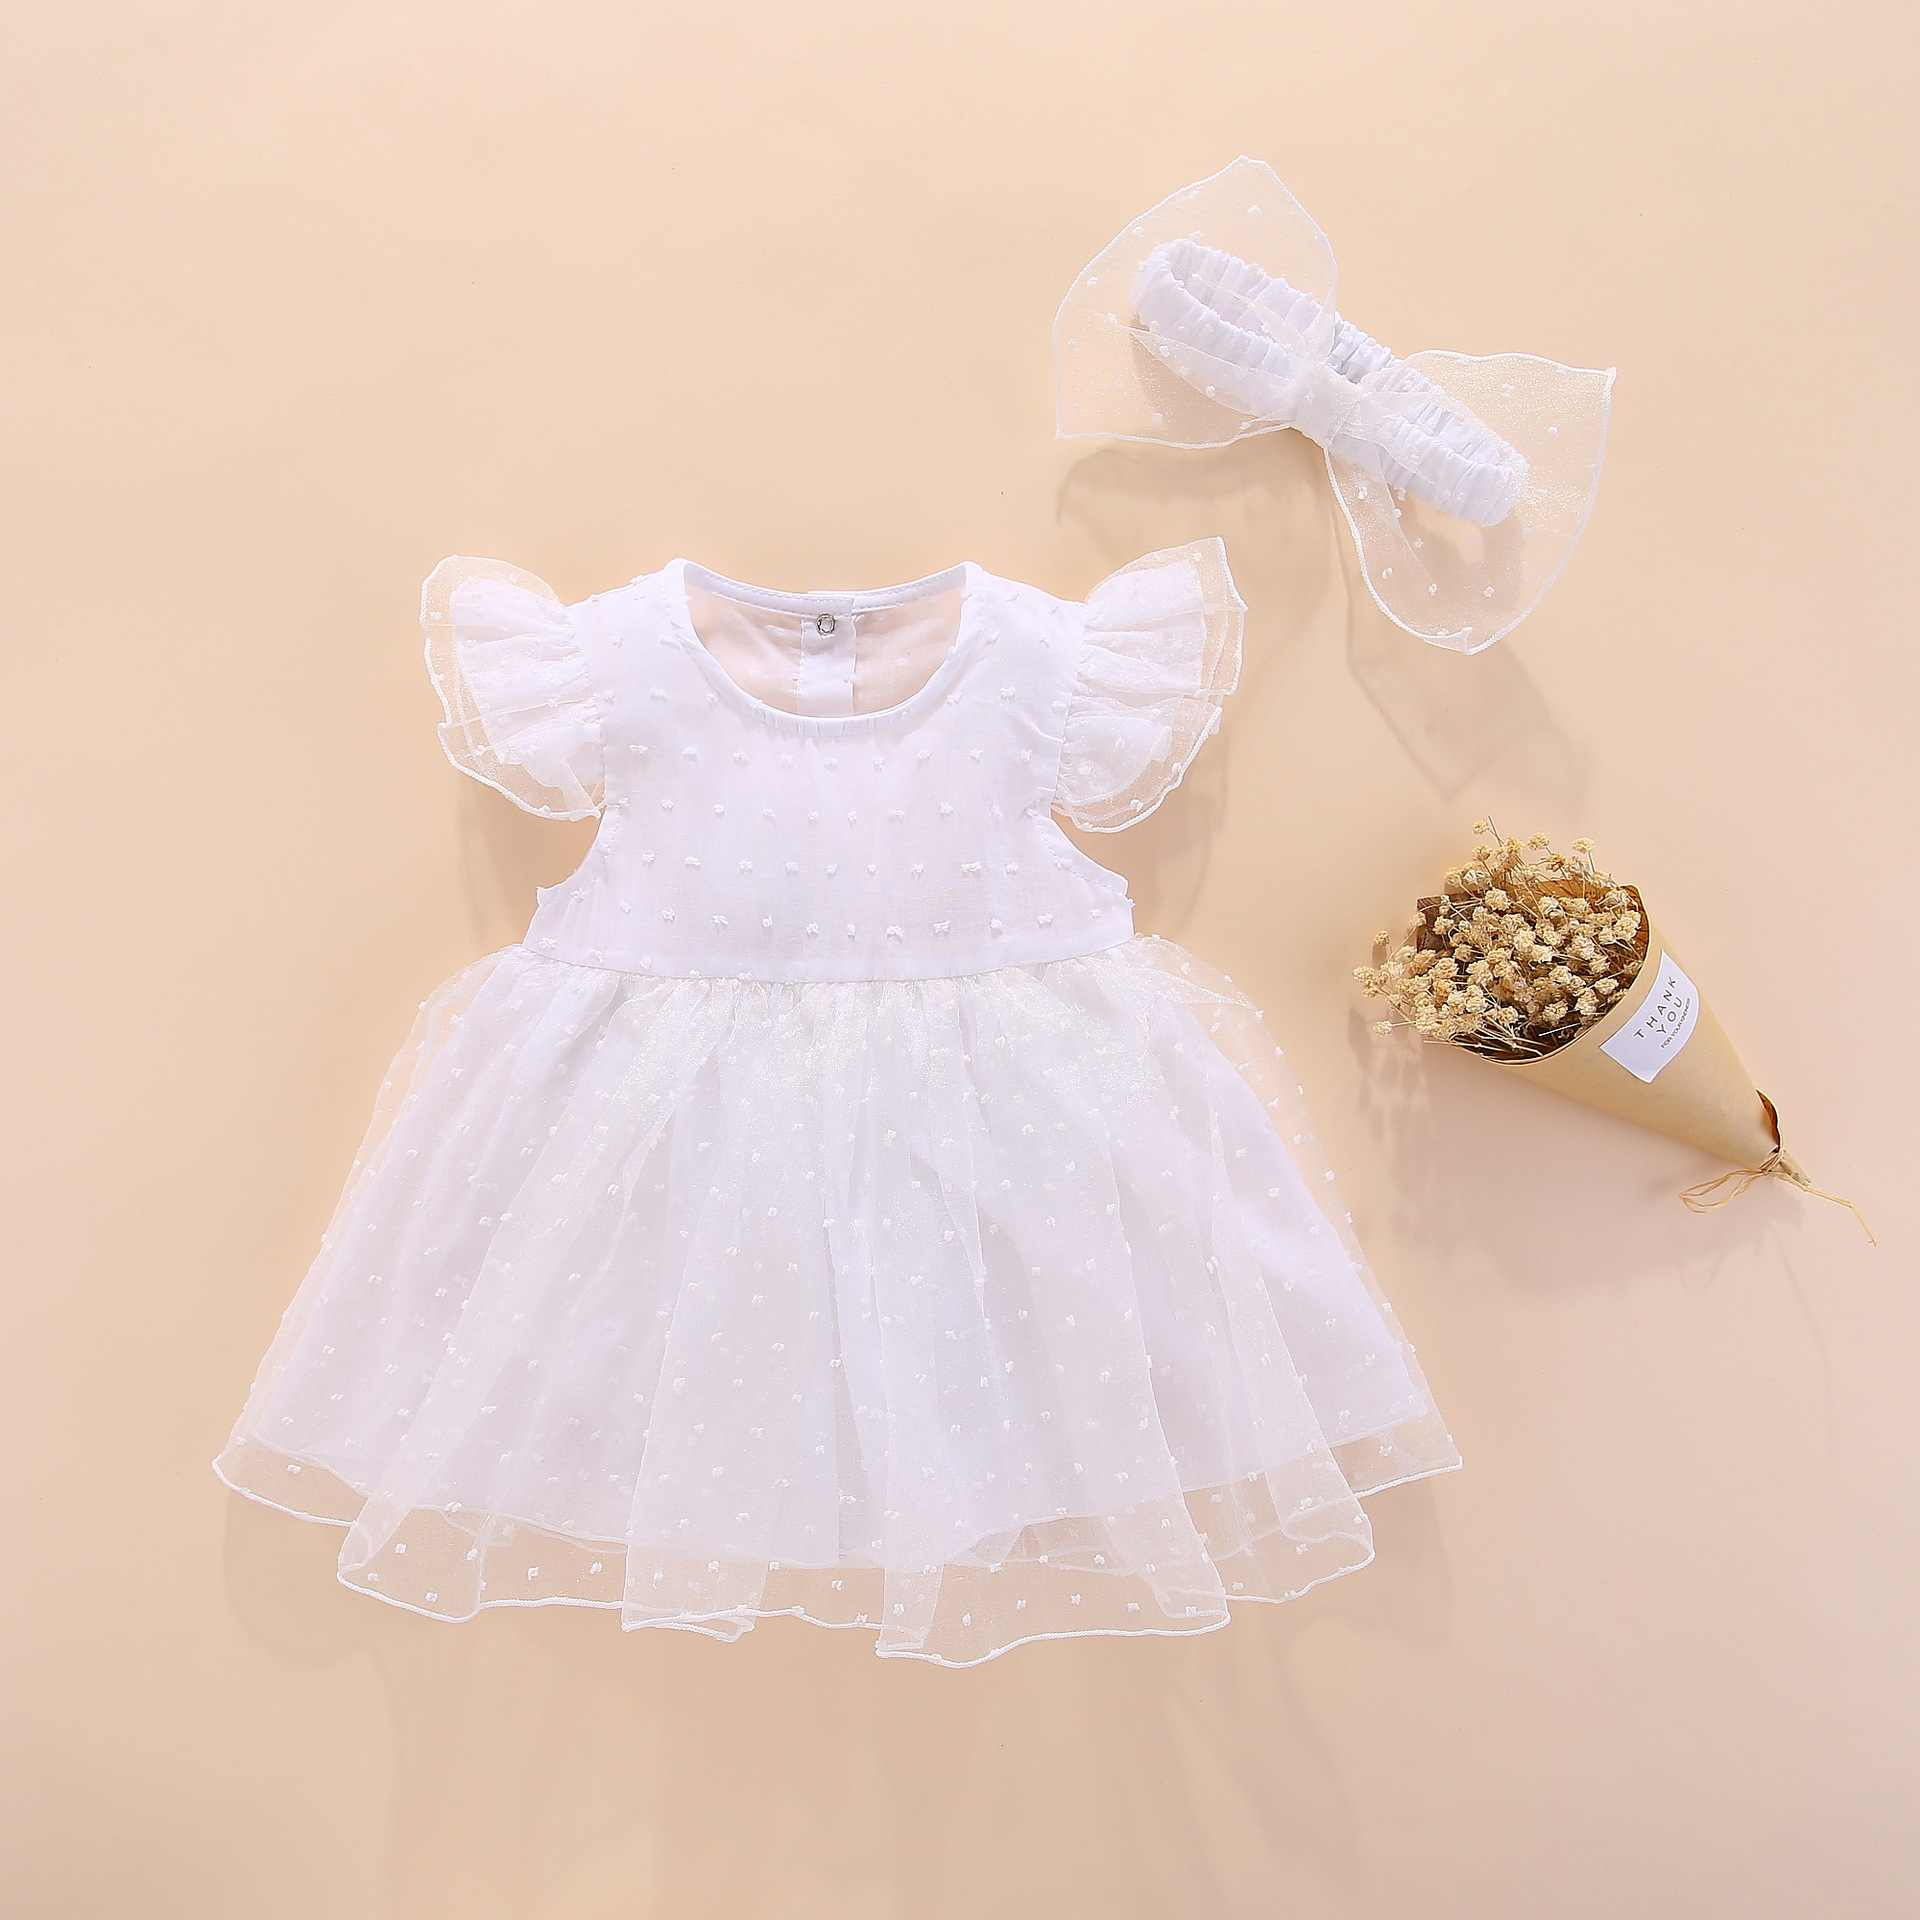 356bf0f37e4c Detail Feedback Questions about newborn baby dress lace set 3 months baby  clothing my first birthday 6 baby clothes girl summer princess tutu romper  ...